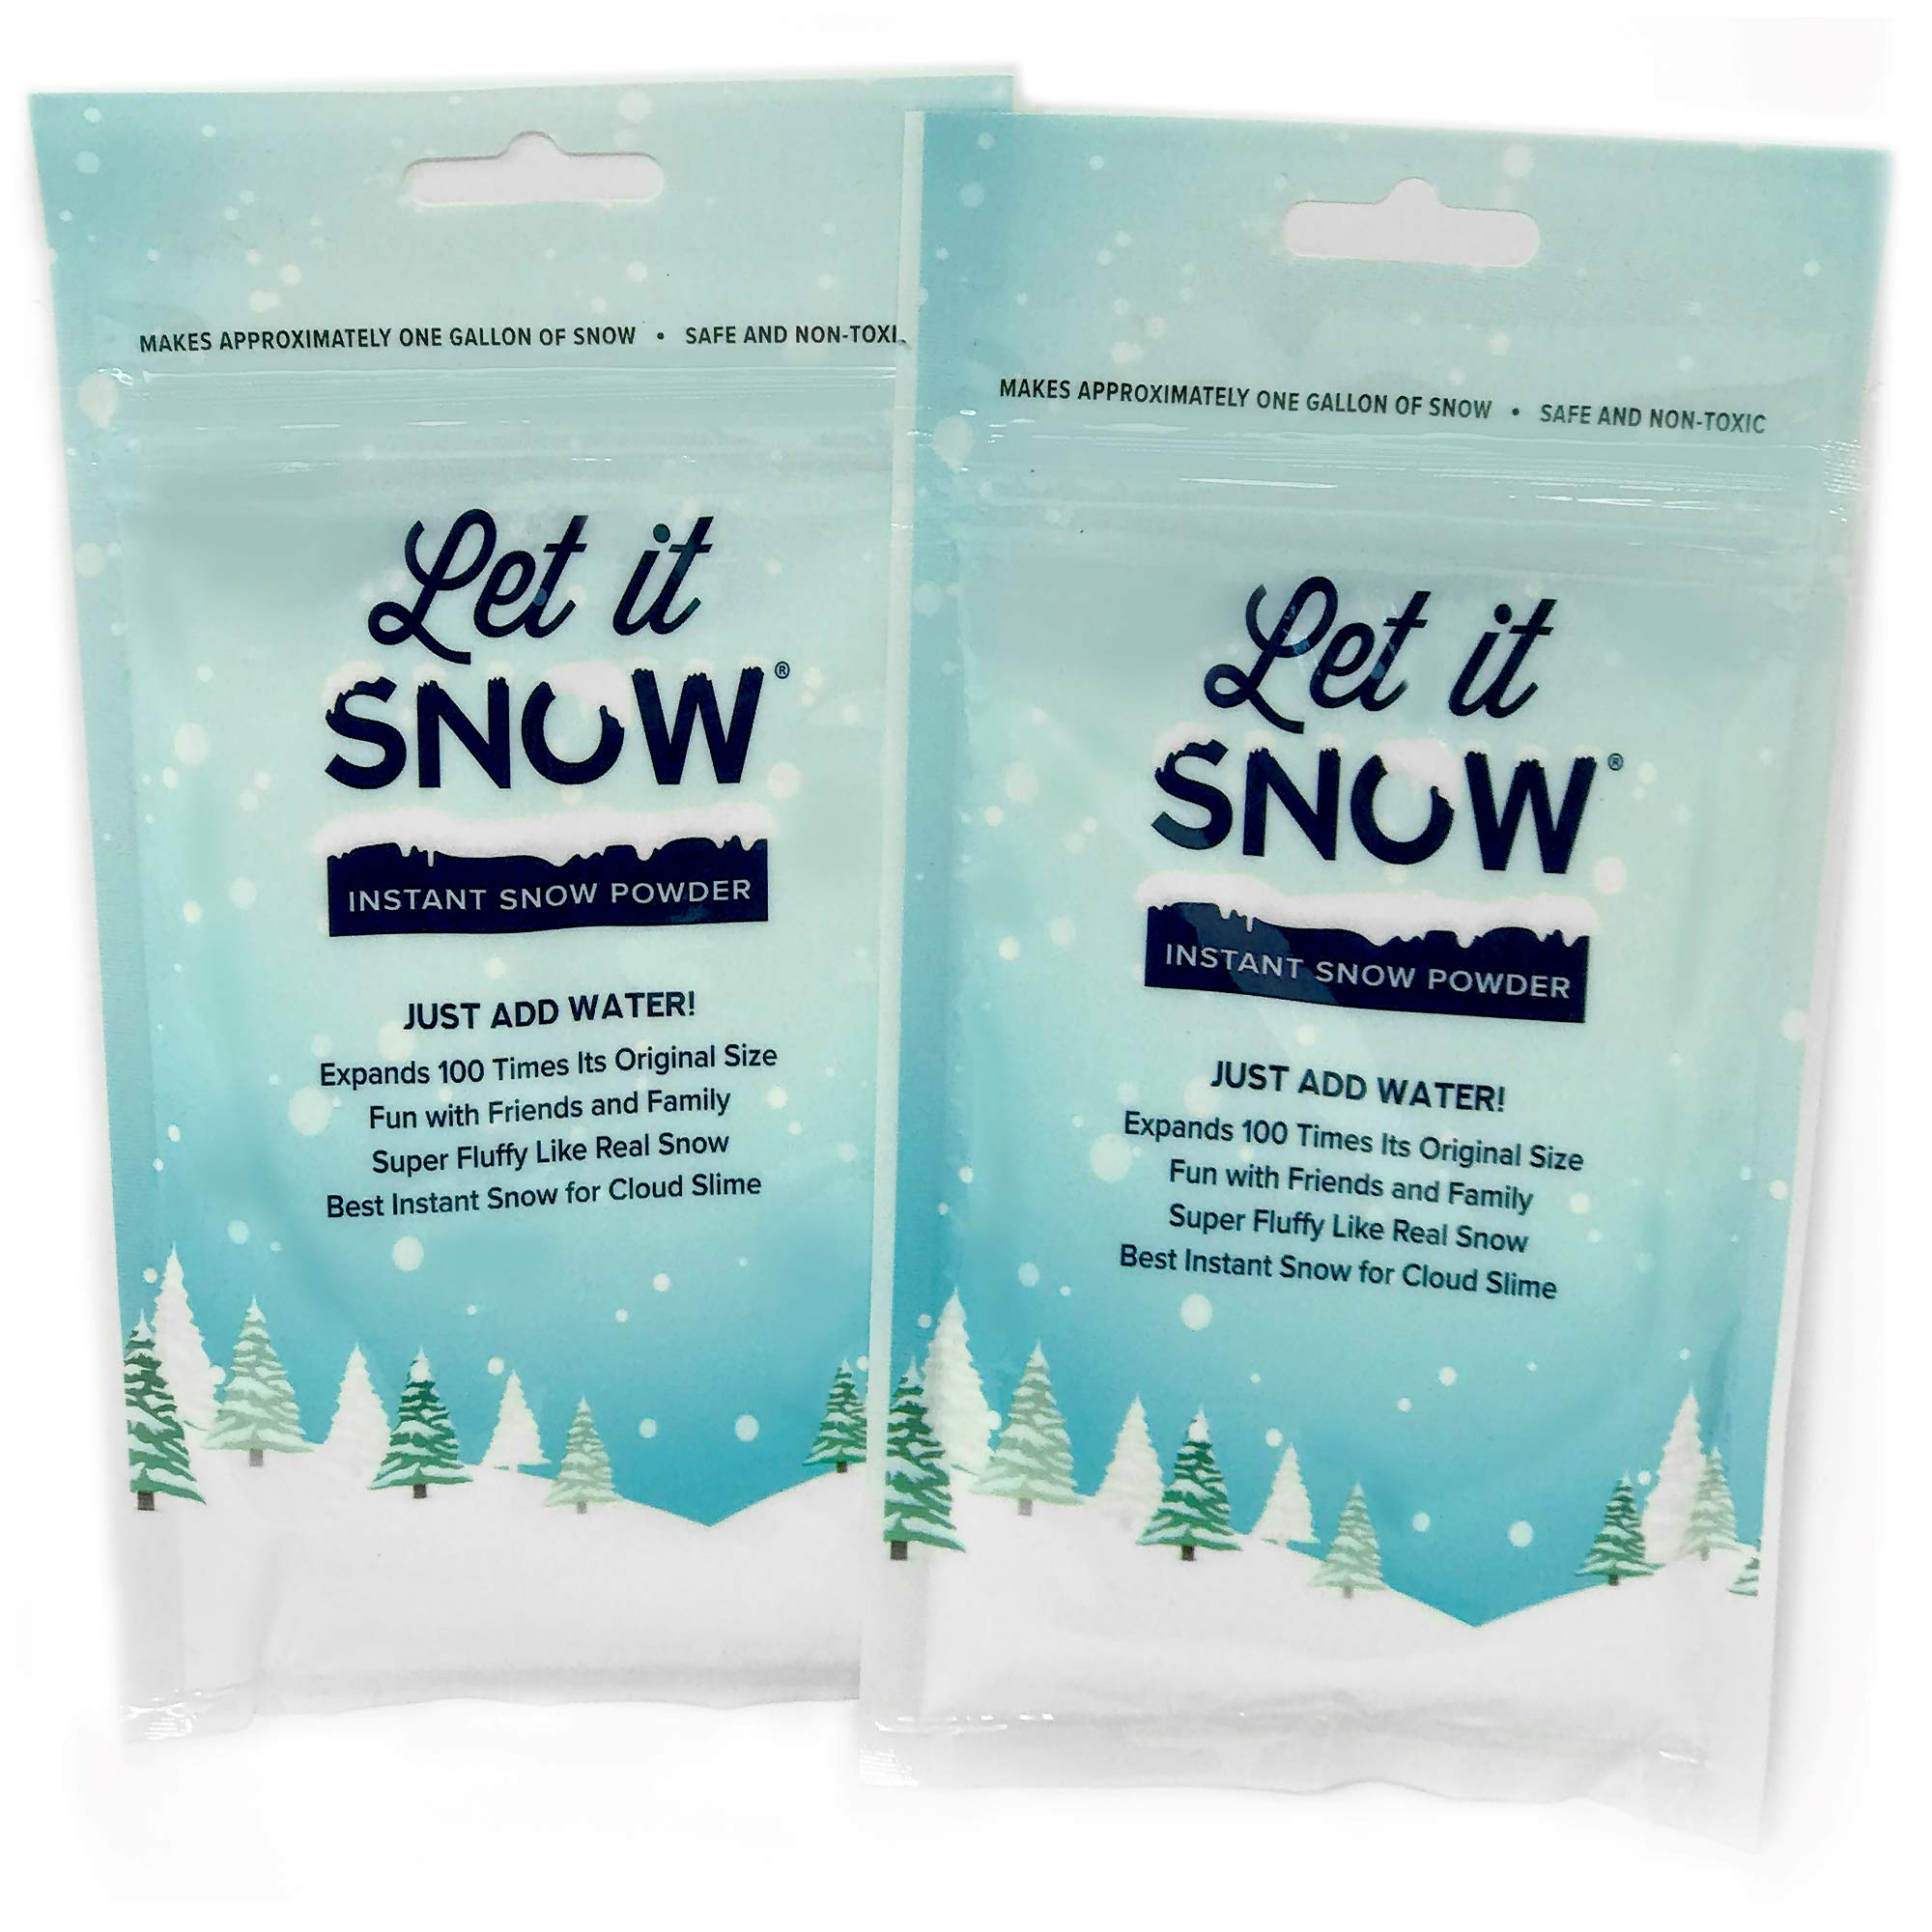 Let it Snow Instant Snow Powder for Slime - Mix Makes 2 Gallons of Fluffy White Fake Snow For Slime - Best Instant Snow for Slime, Cloud Slime and Frozen Birthdays - Looks and Feels Like Real Snow